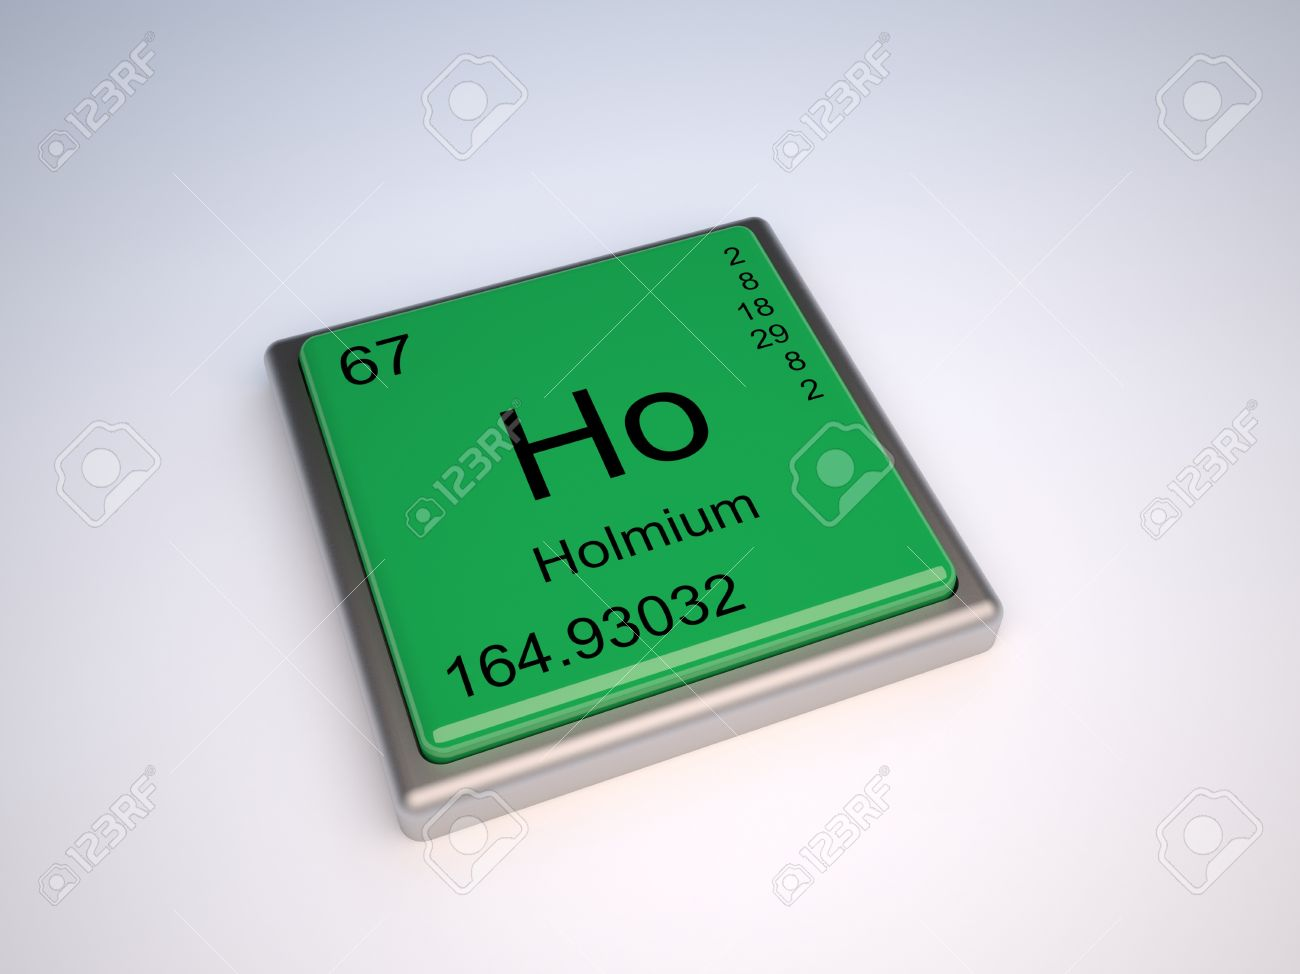 Holmium Chemical Element Of The Periodic Table With Symbol Ho Stock